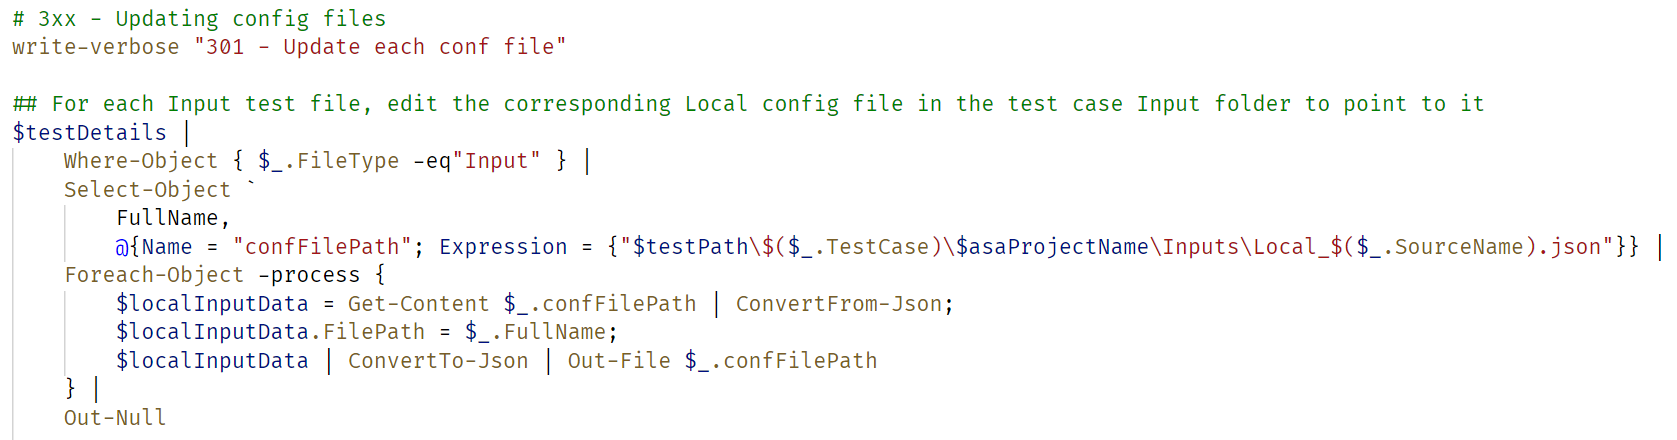 Sample of PowerShell code - look at me flexing my mad